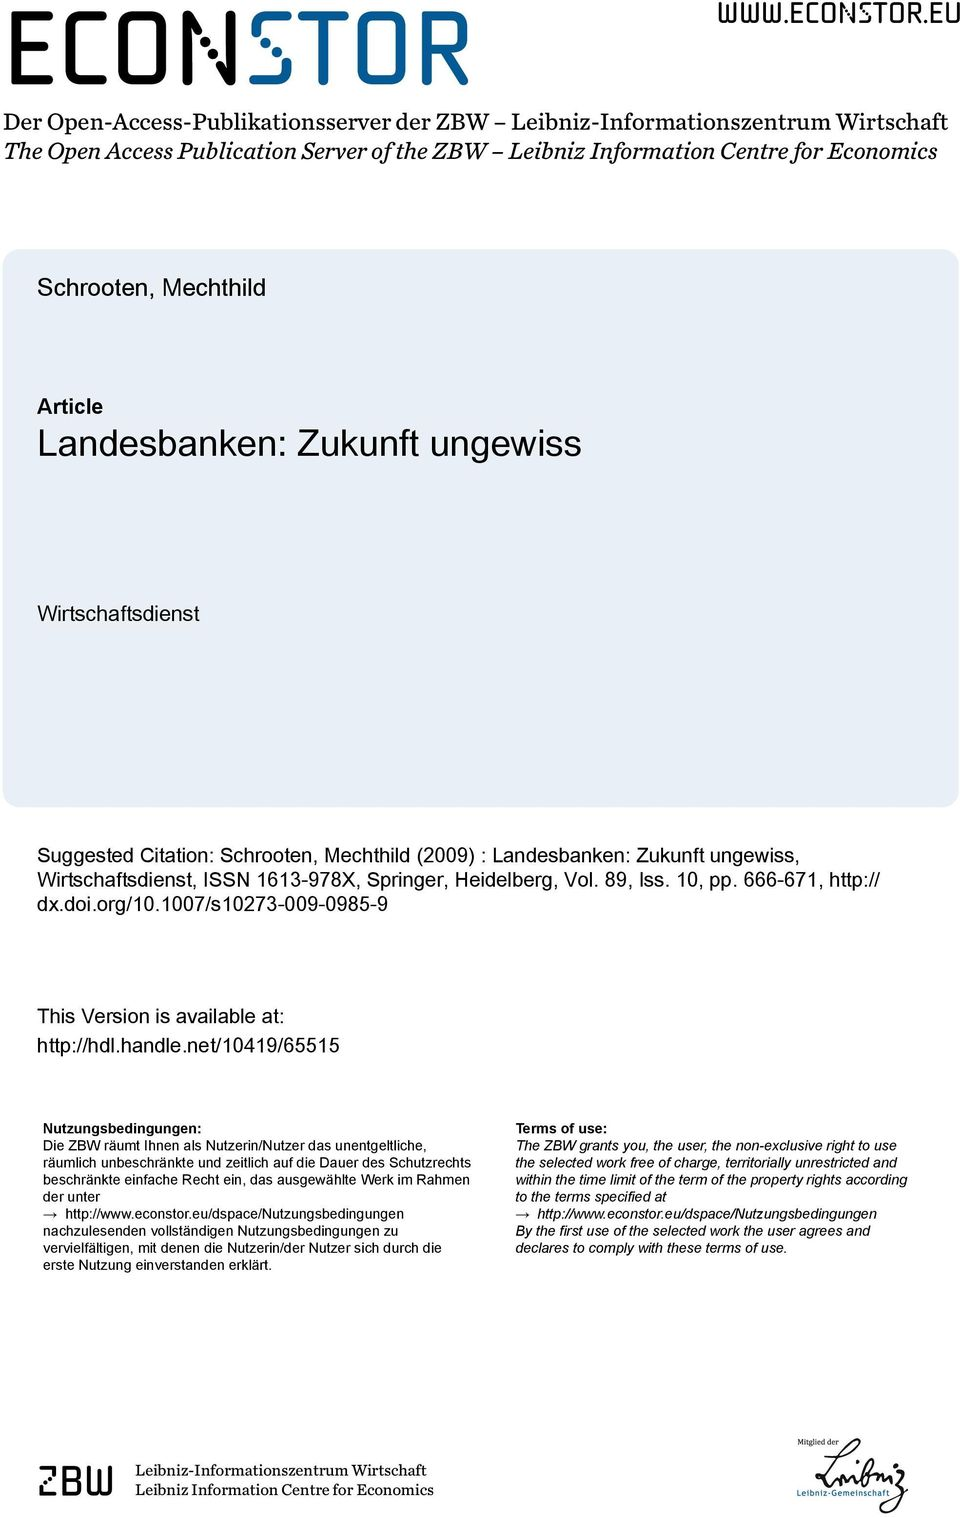 eu Der Open-Access-Publikationsserver der ZBW Leibniz-Informationszentrum Wirtschaft The Open Access Publication Server of the ZBW Leibniz Information Centre for Economics Schrooten, Mechthild